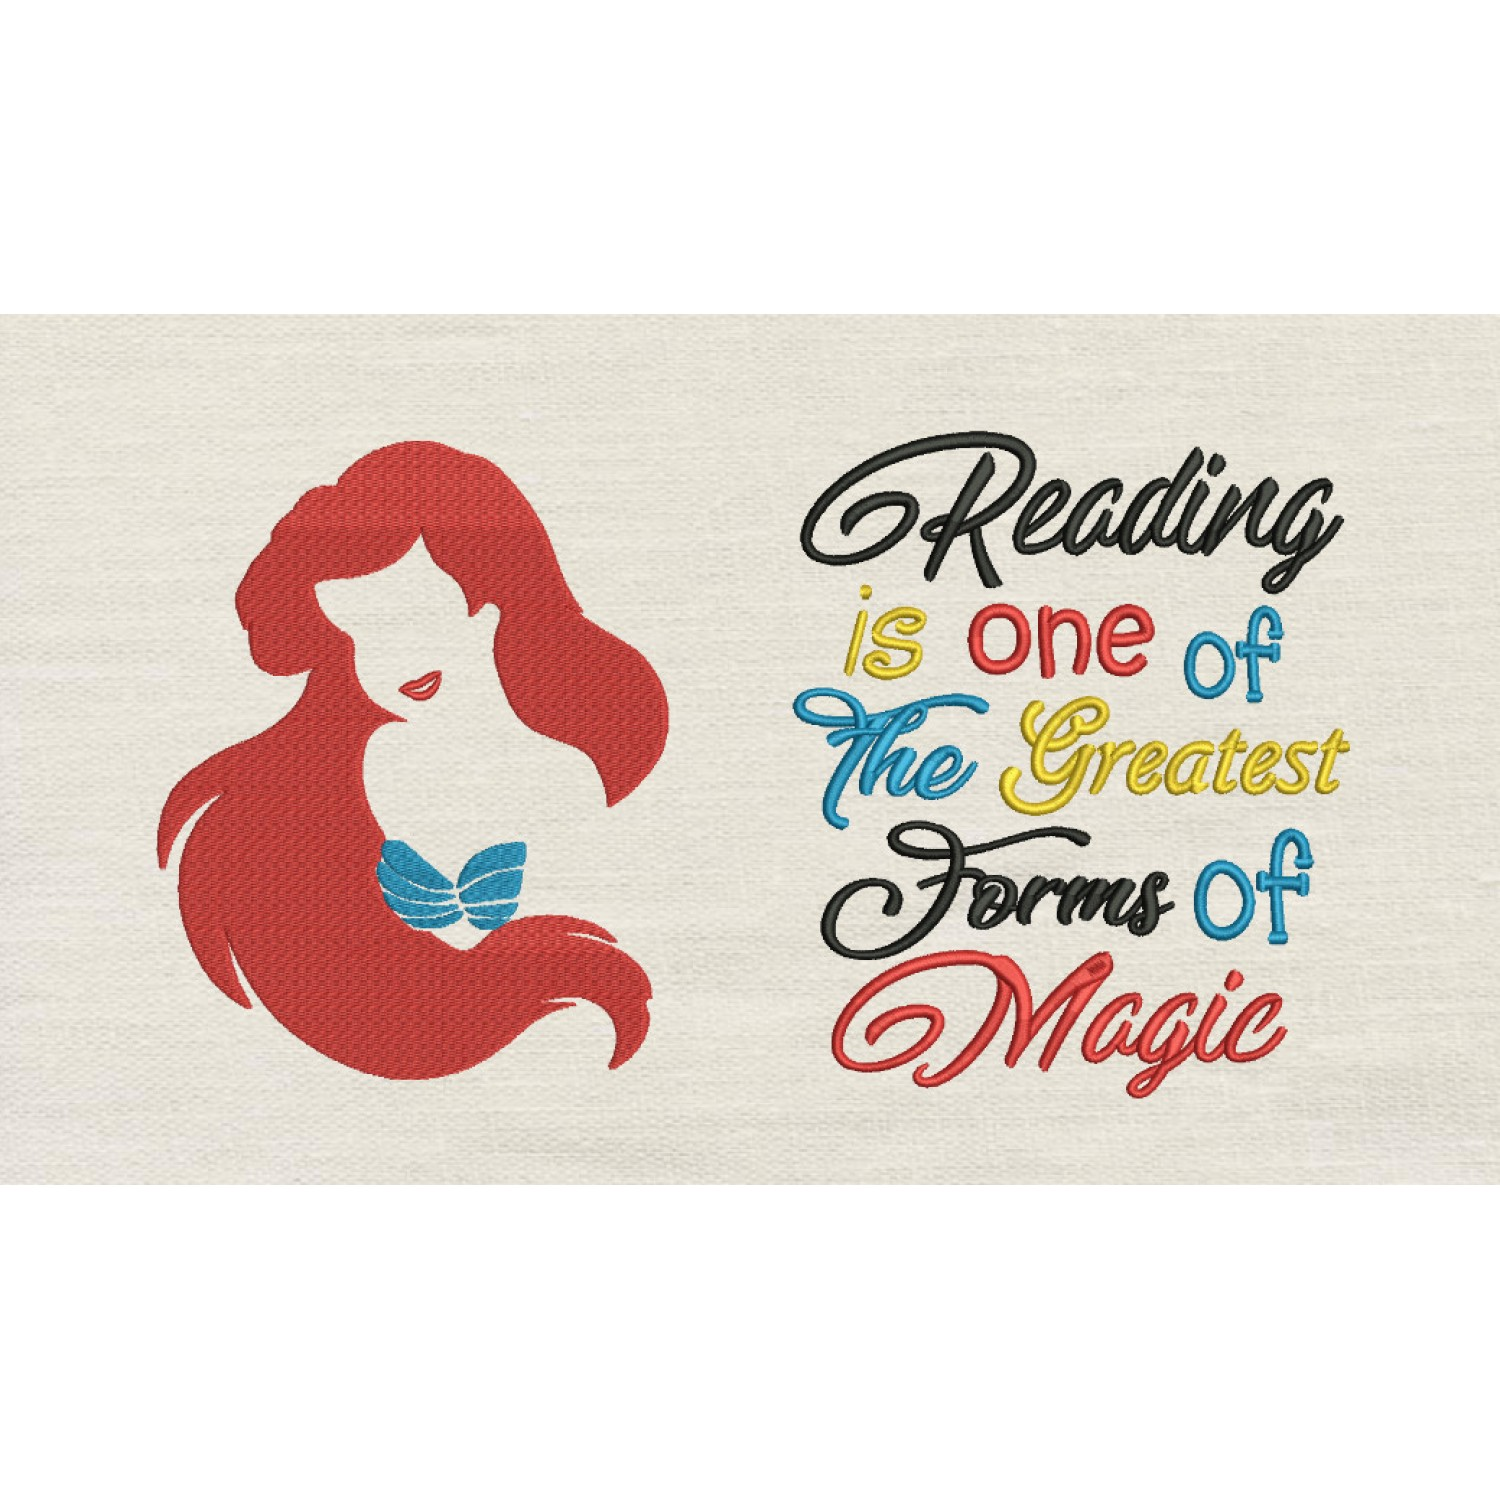 Little Mermaid Embroidery with Reading is one of